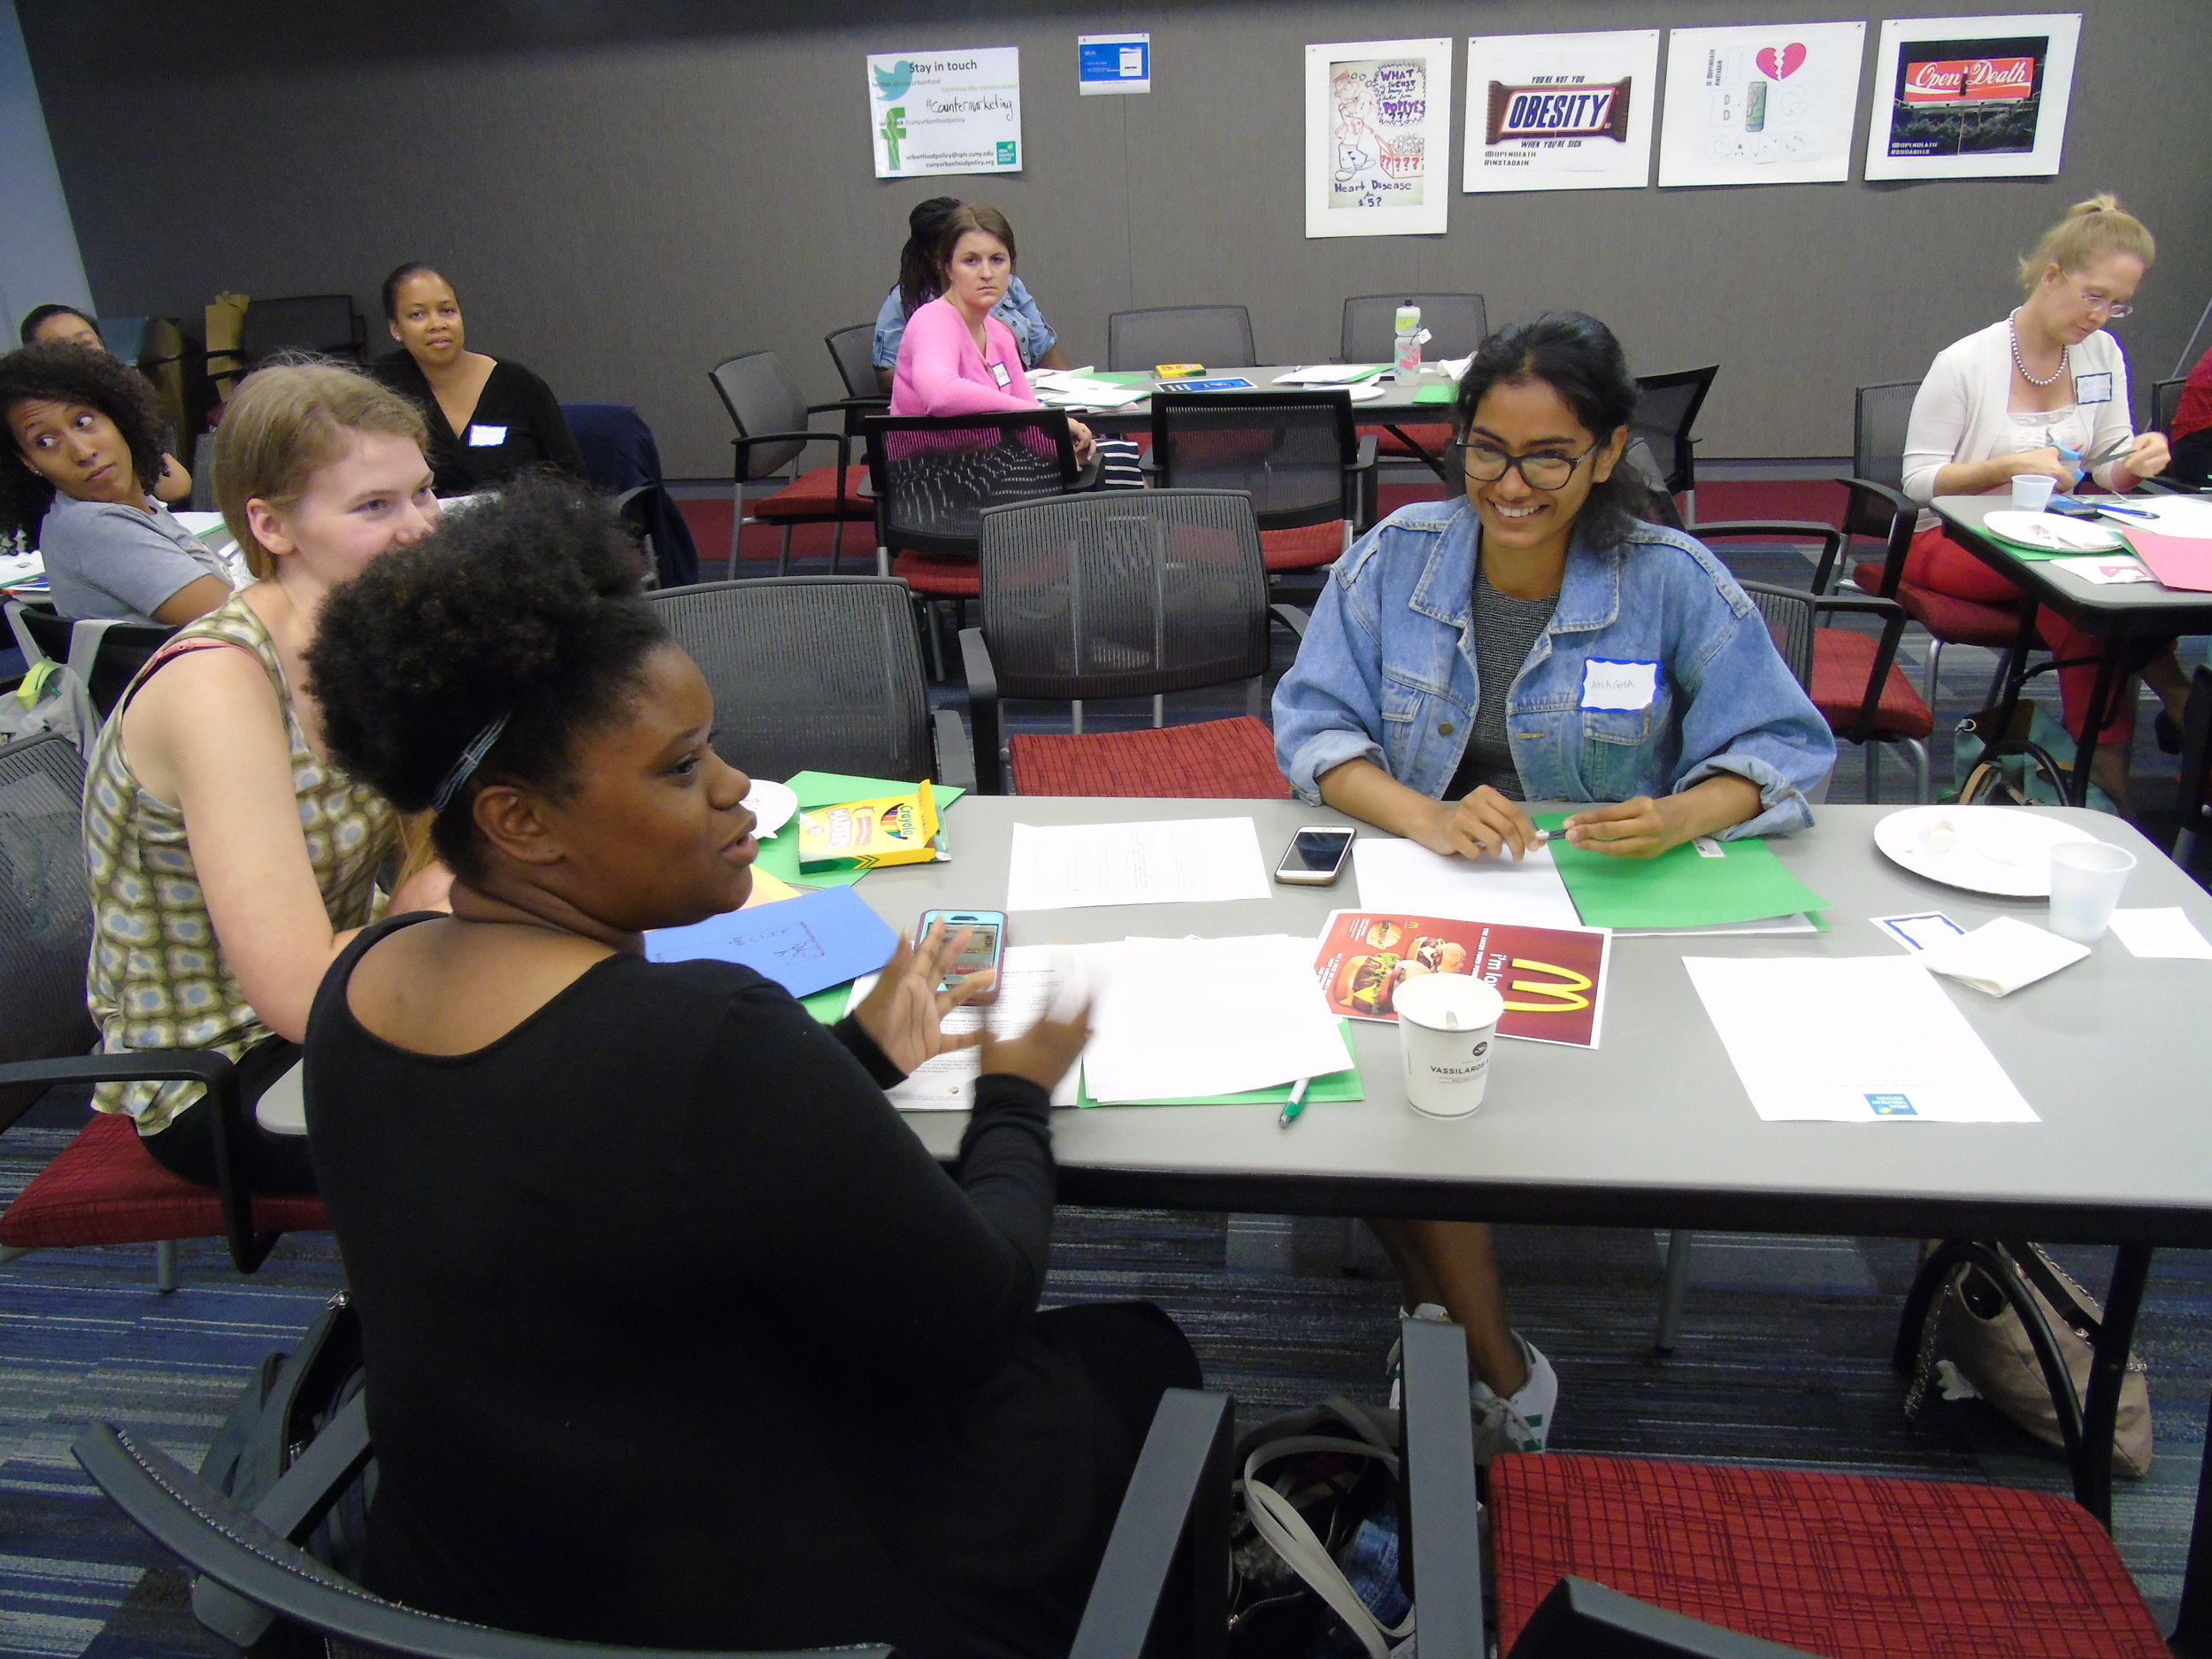 Participants from the Countermarketing Staff Training Program having a discussion.